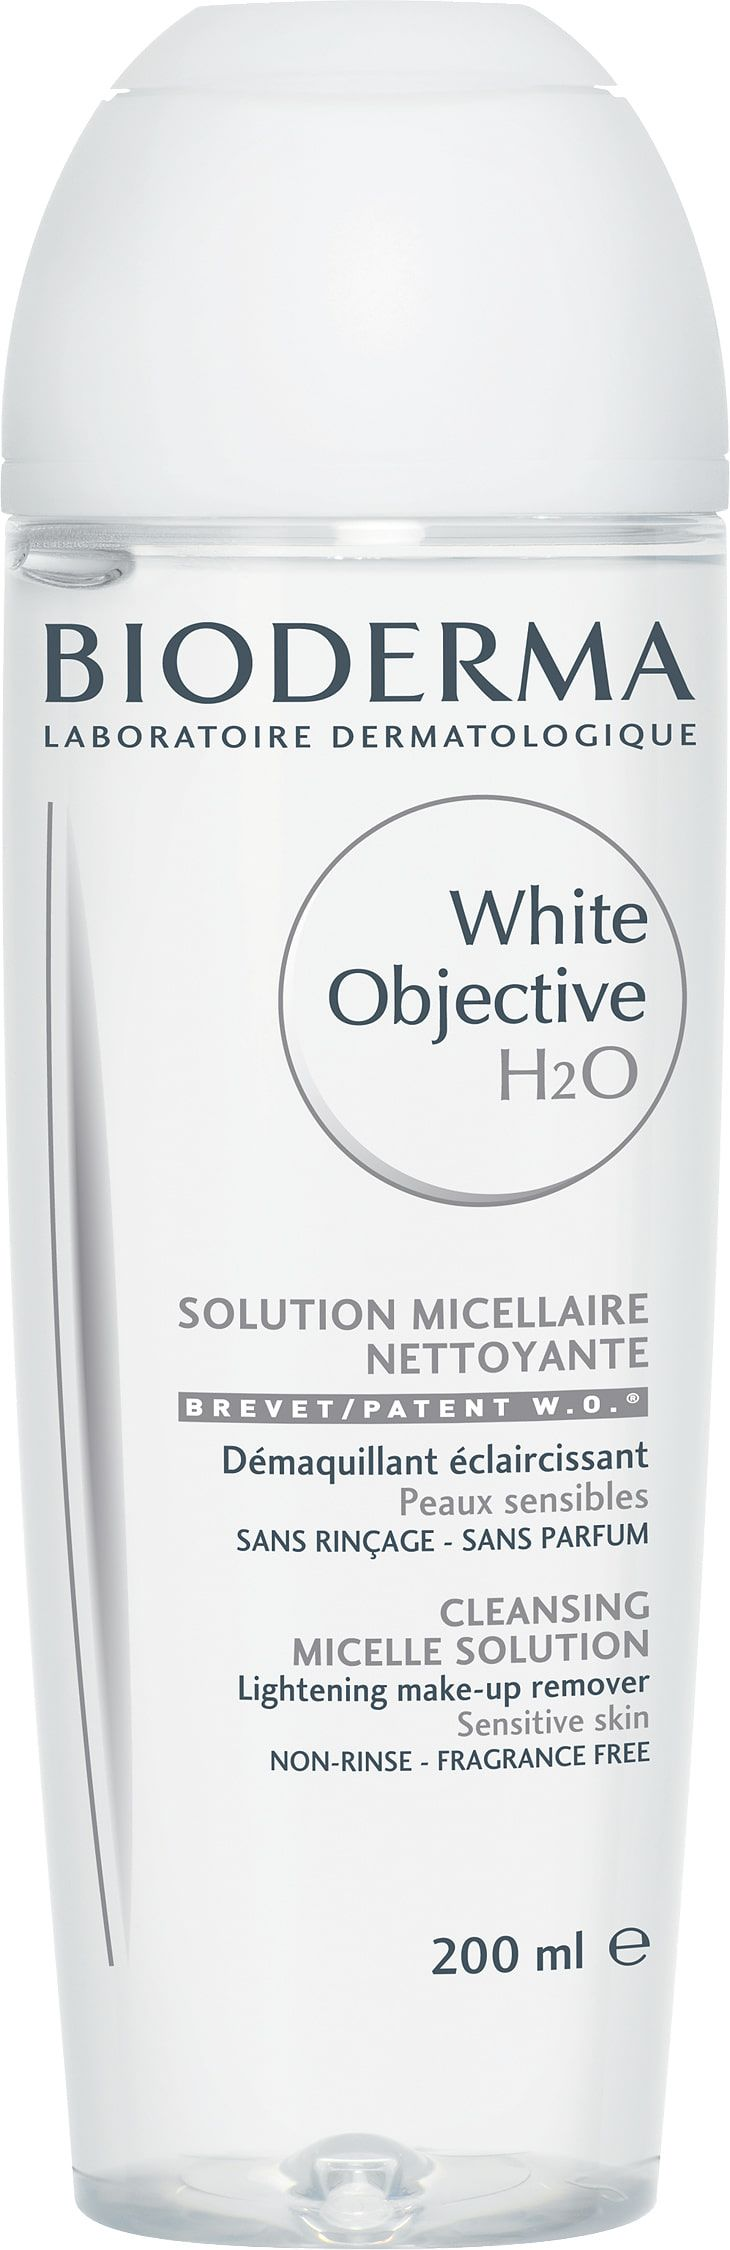 Bioderma White Objective H20 - Micelle Solution 200ml